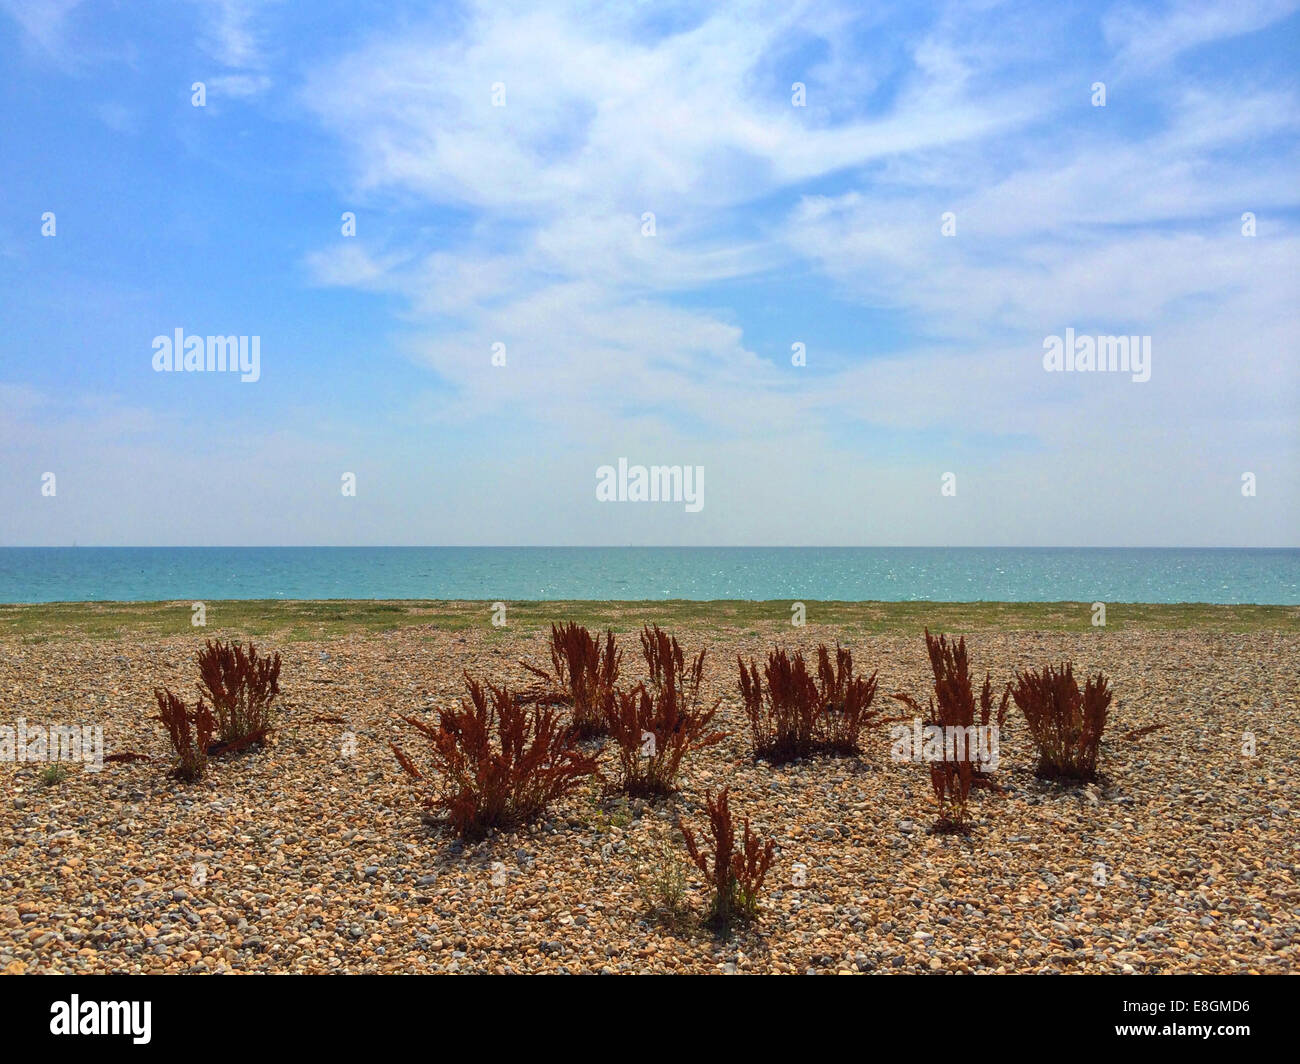 UK, England, West Sussex, Goring-by-Sea, Beach - Stock Image